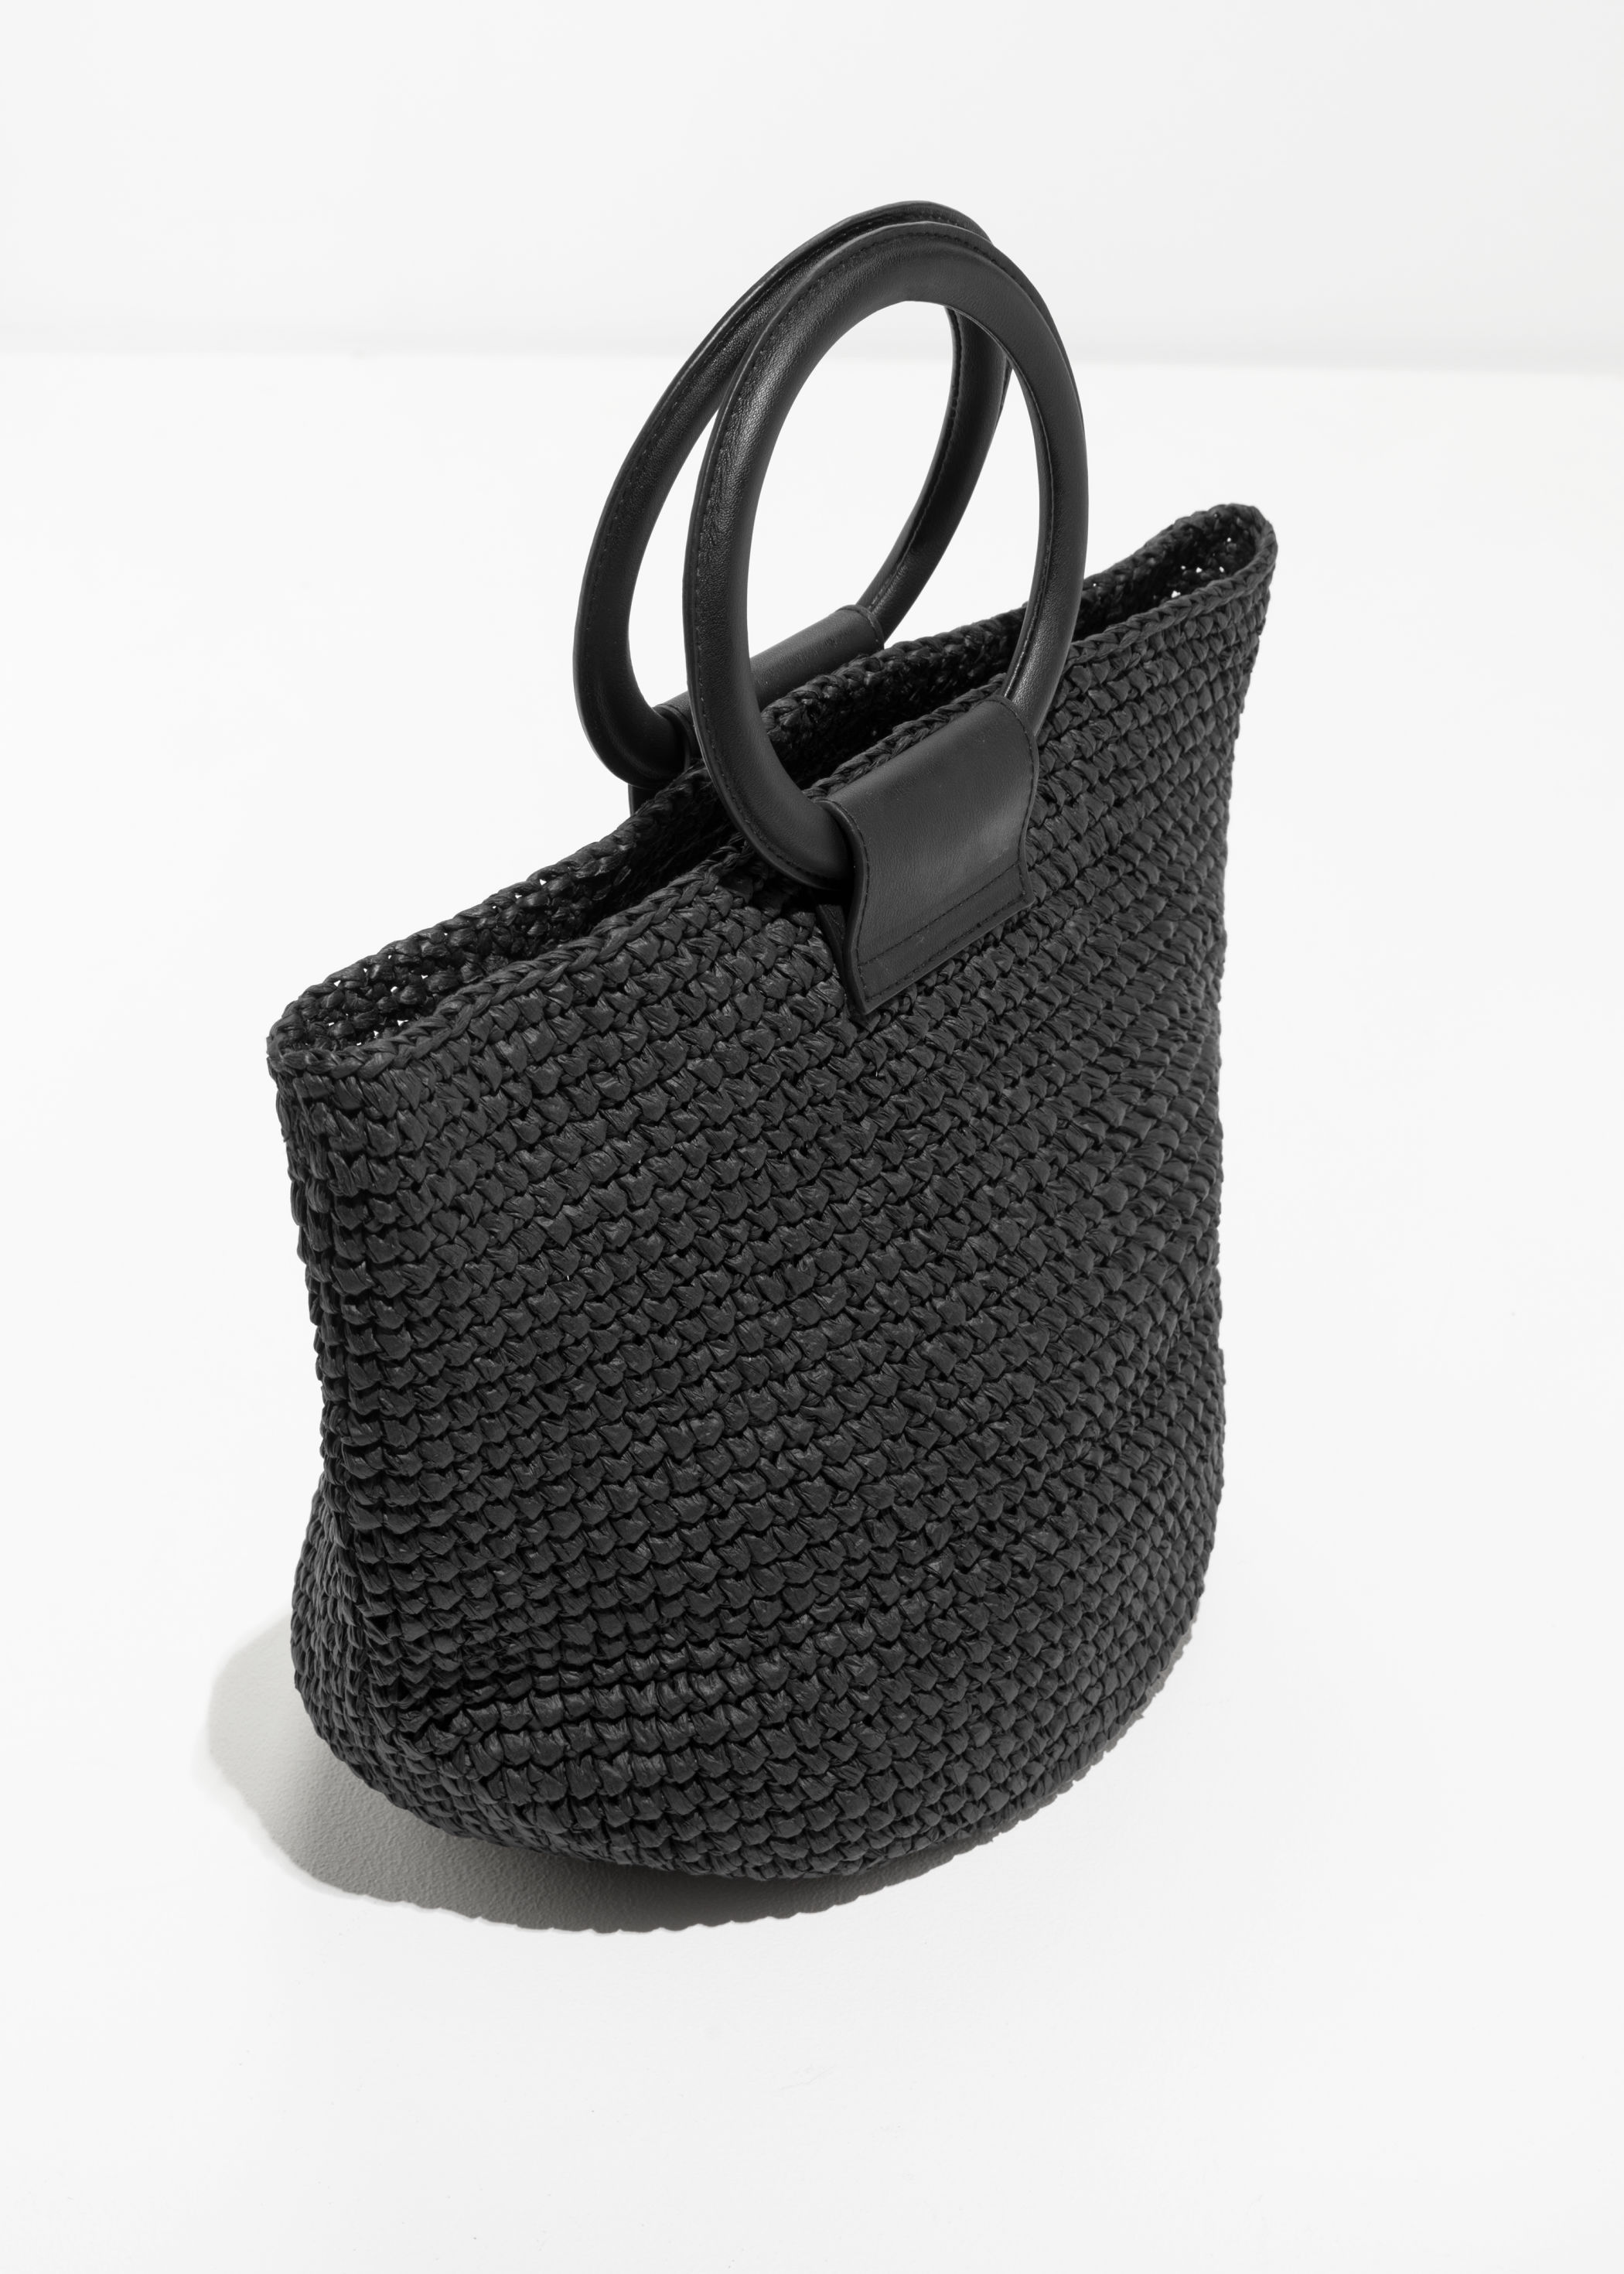 b970729815a4   Other Stories - woven straw tote bag - Dresscodes